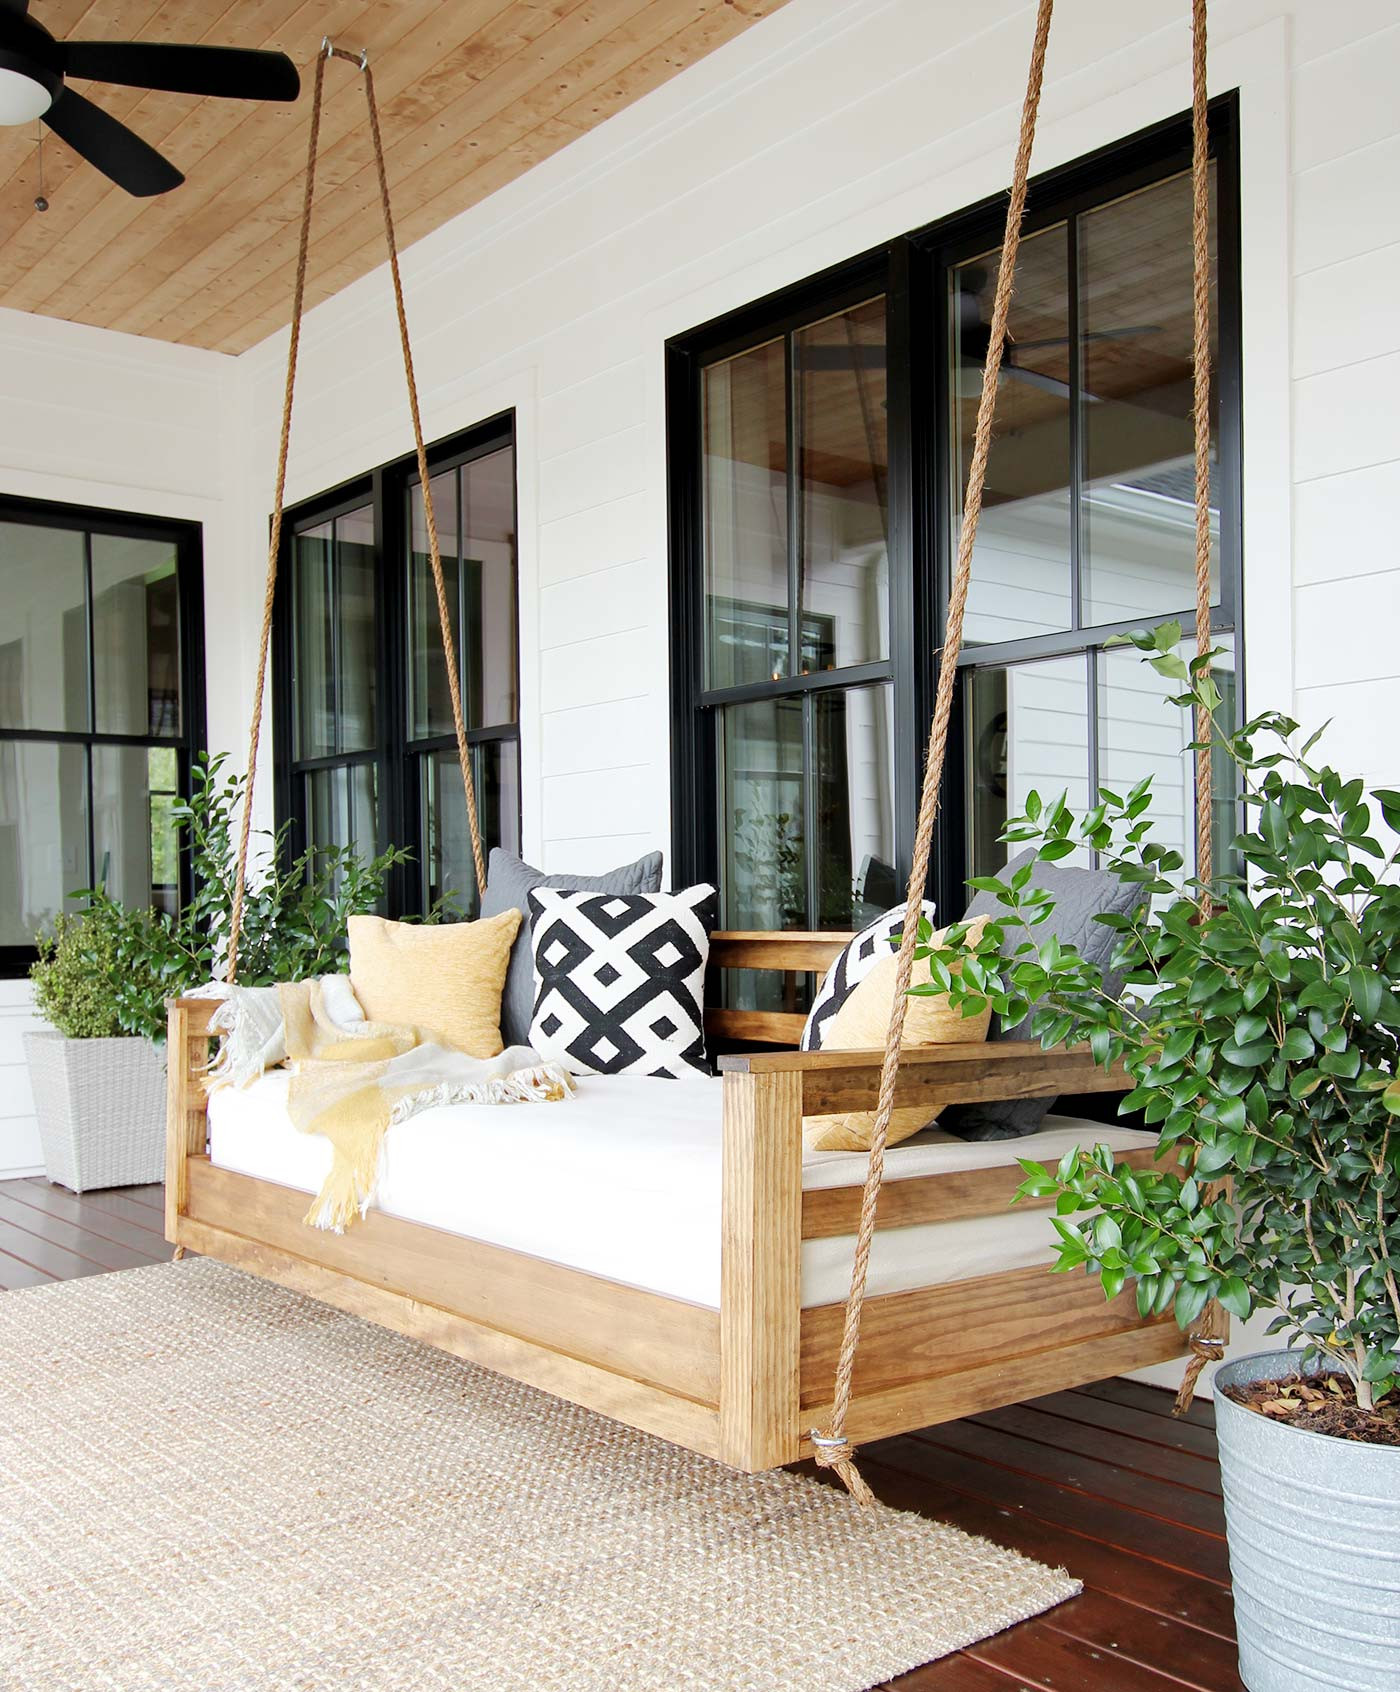 DIY Porch Swing Plans  How to Build a Porch Swing Bed Plank and Pillow